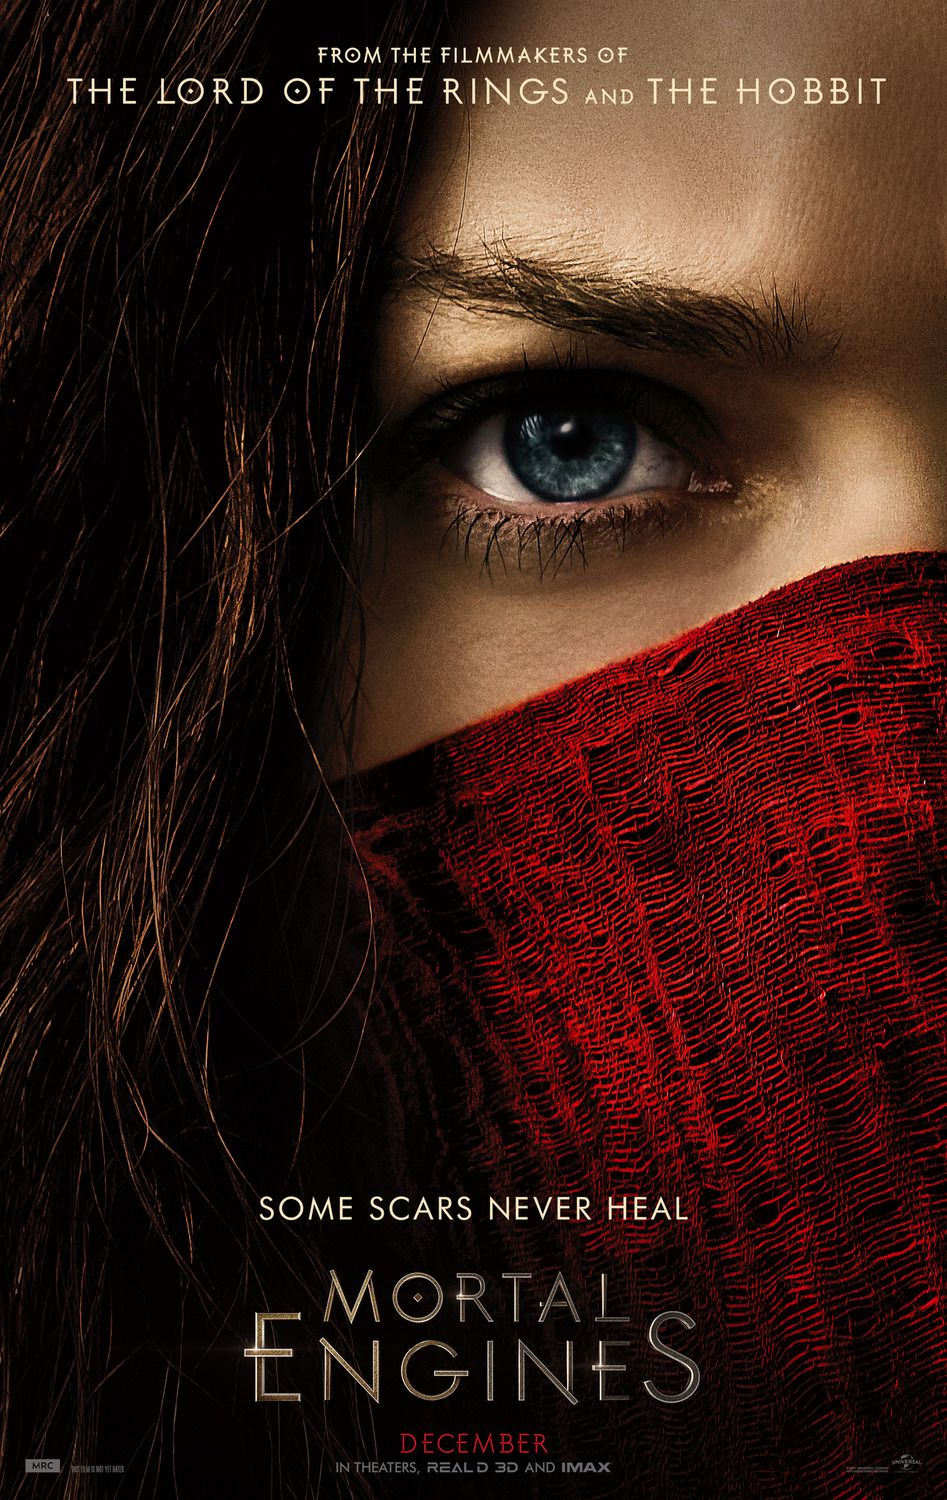 Mortal Engines 2018 Robert Sheehan, Hera Hilmar, Ronan Raftery, Stephen Lang - fantasy film poster